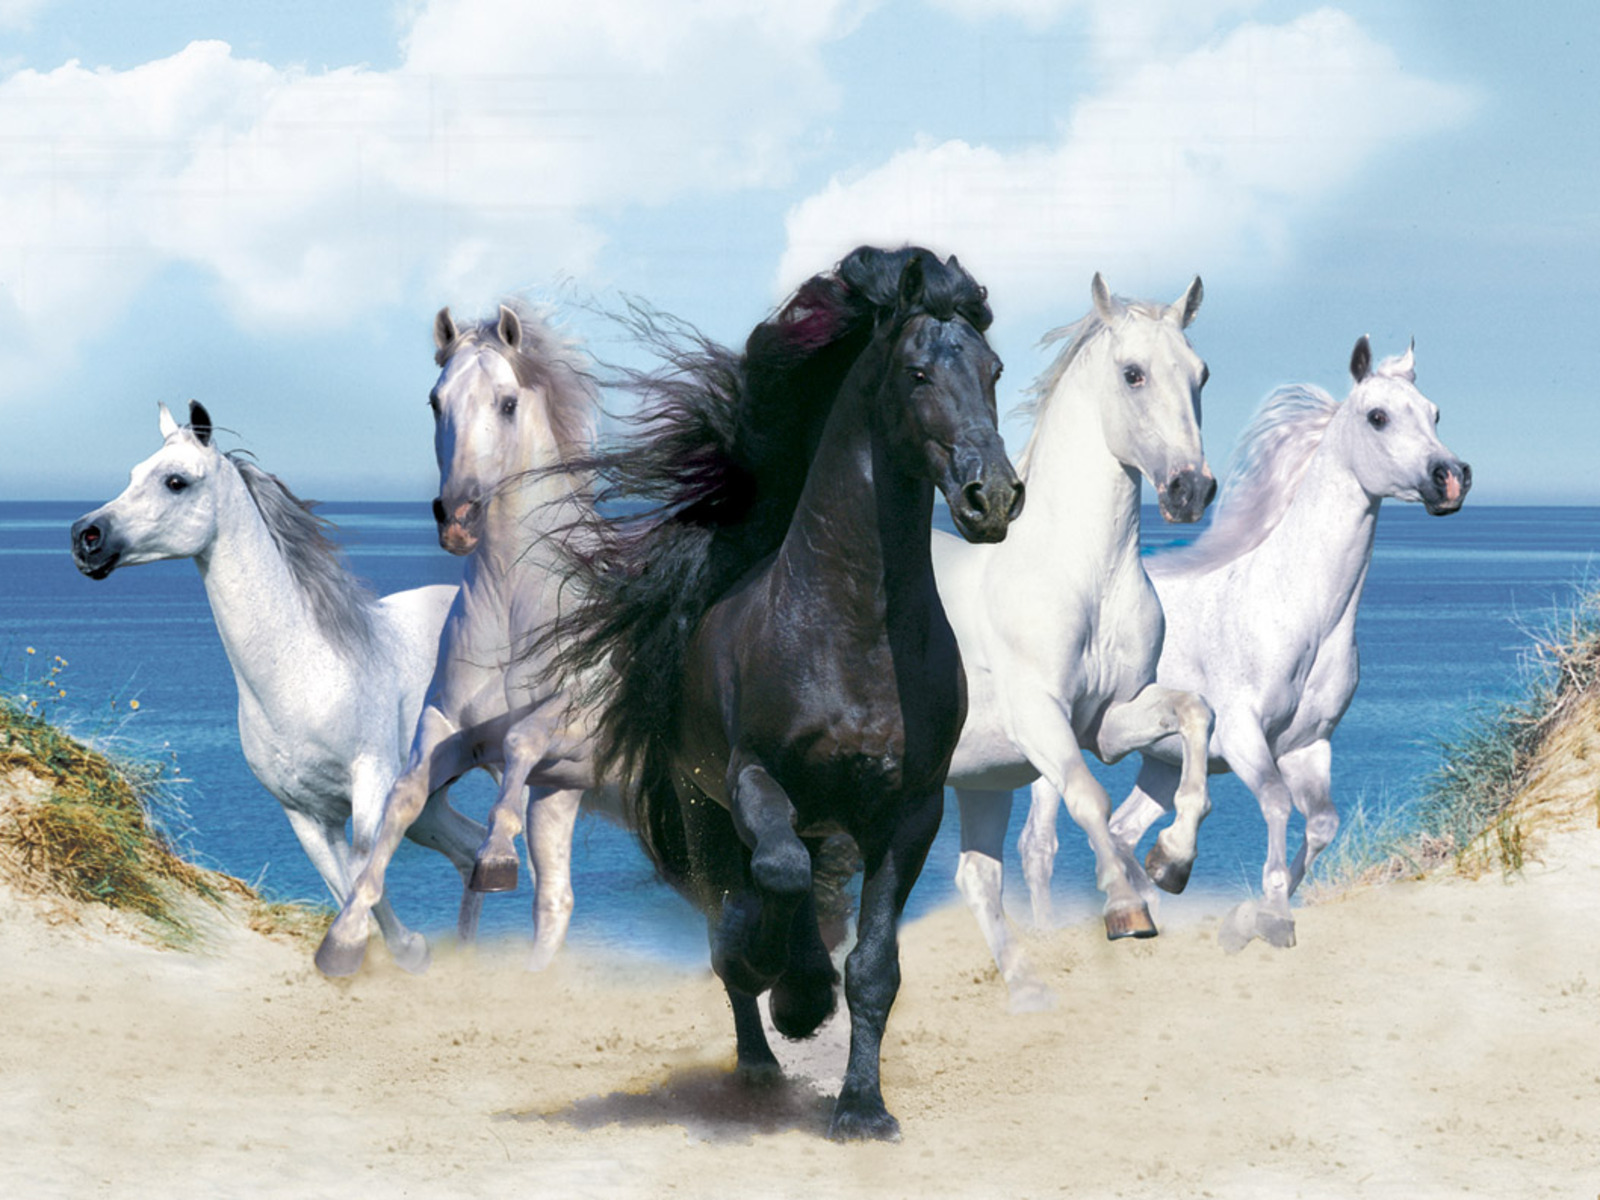 All Animals Wallpaper: Wallpapers: Lovely Animals Wallpapers